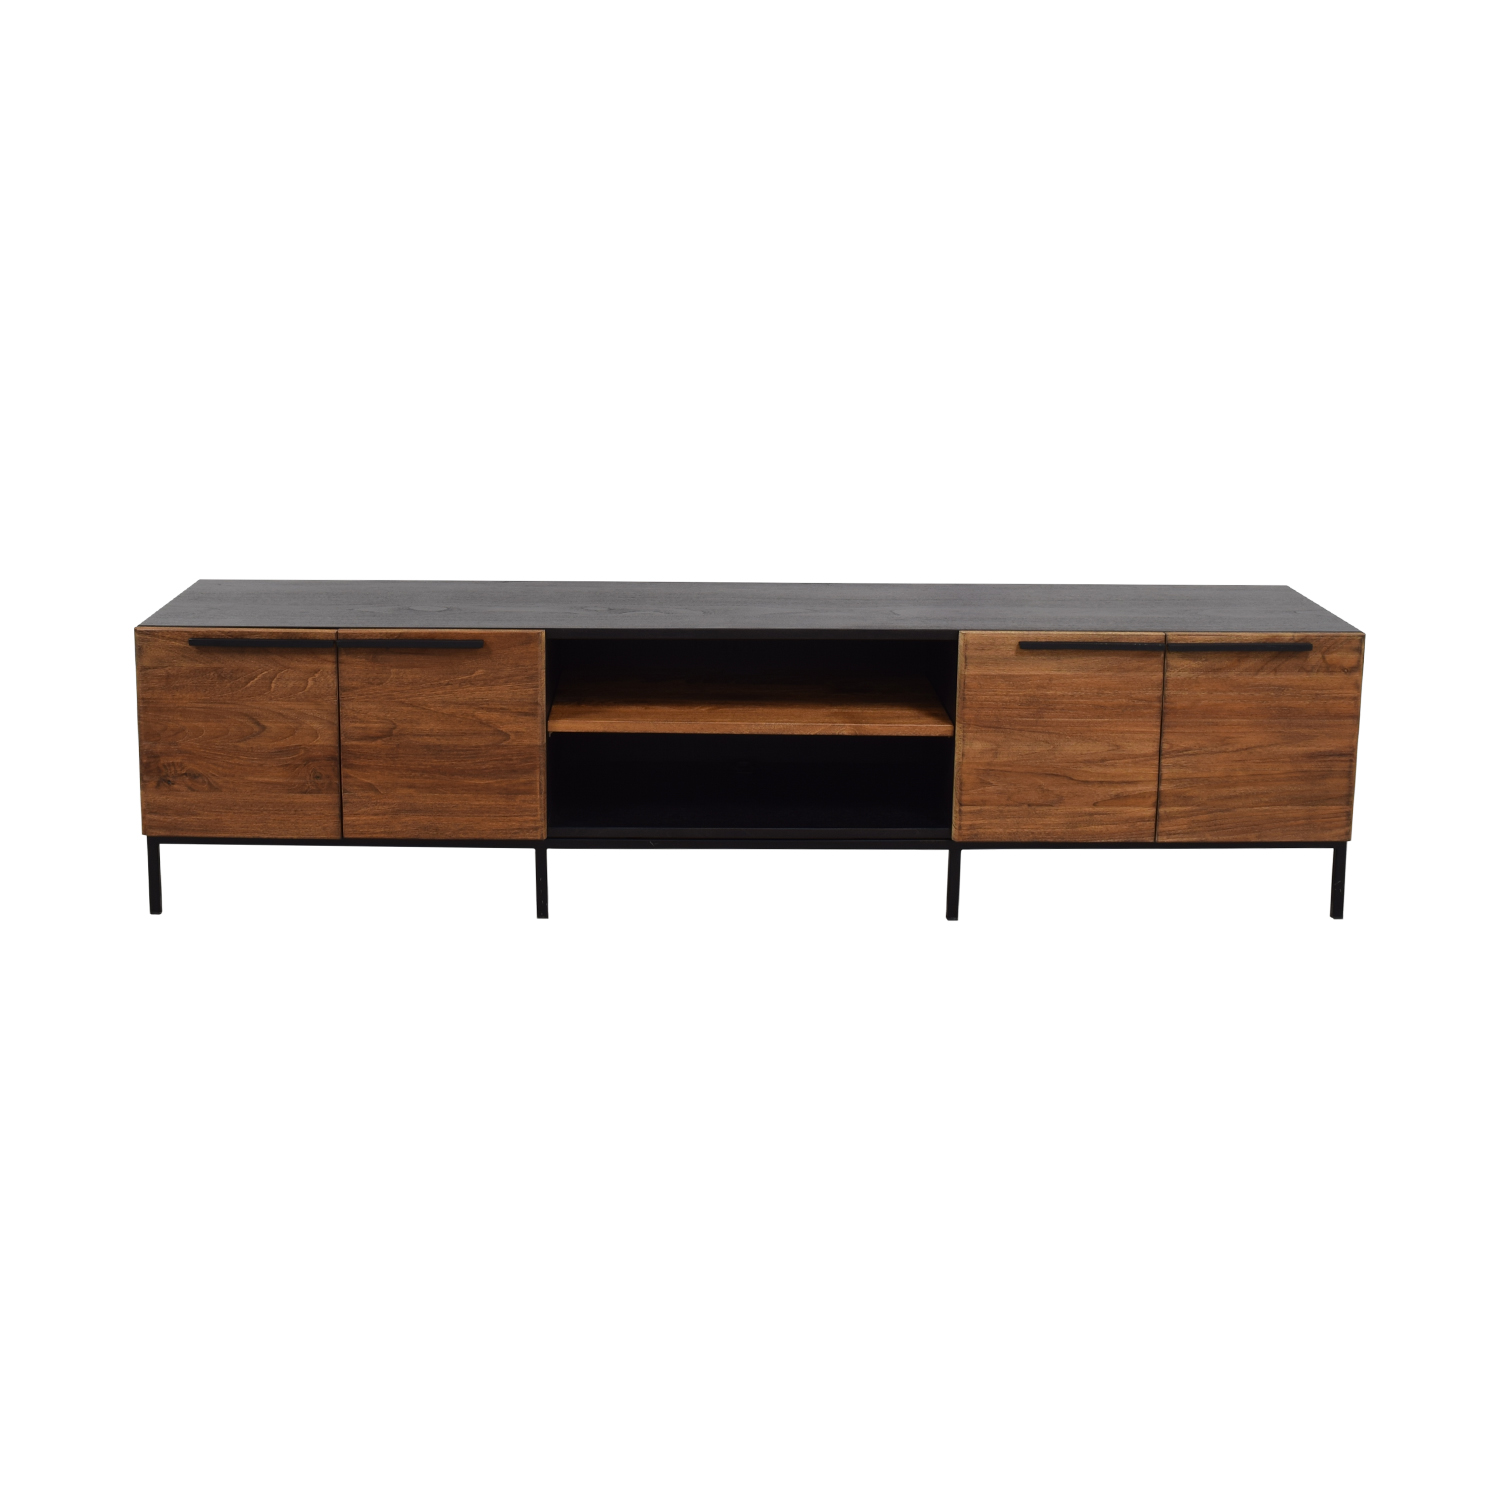 buy Crate & Barrel Rigby Natural Large Media Console with Base Crate & Barrel